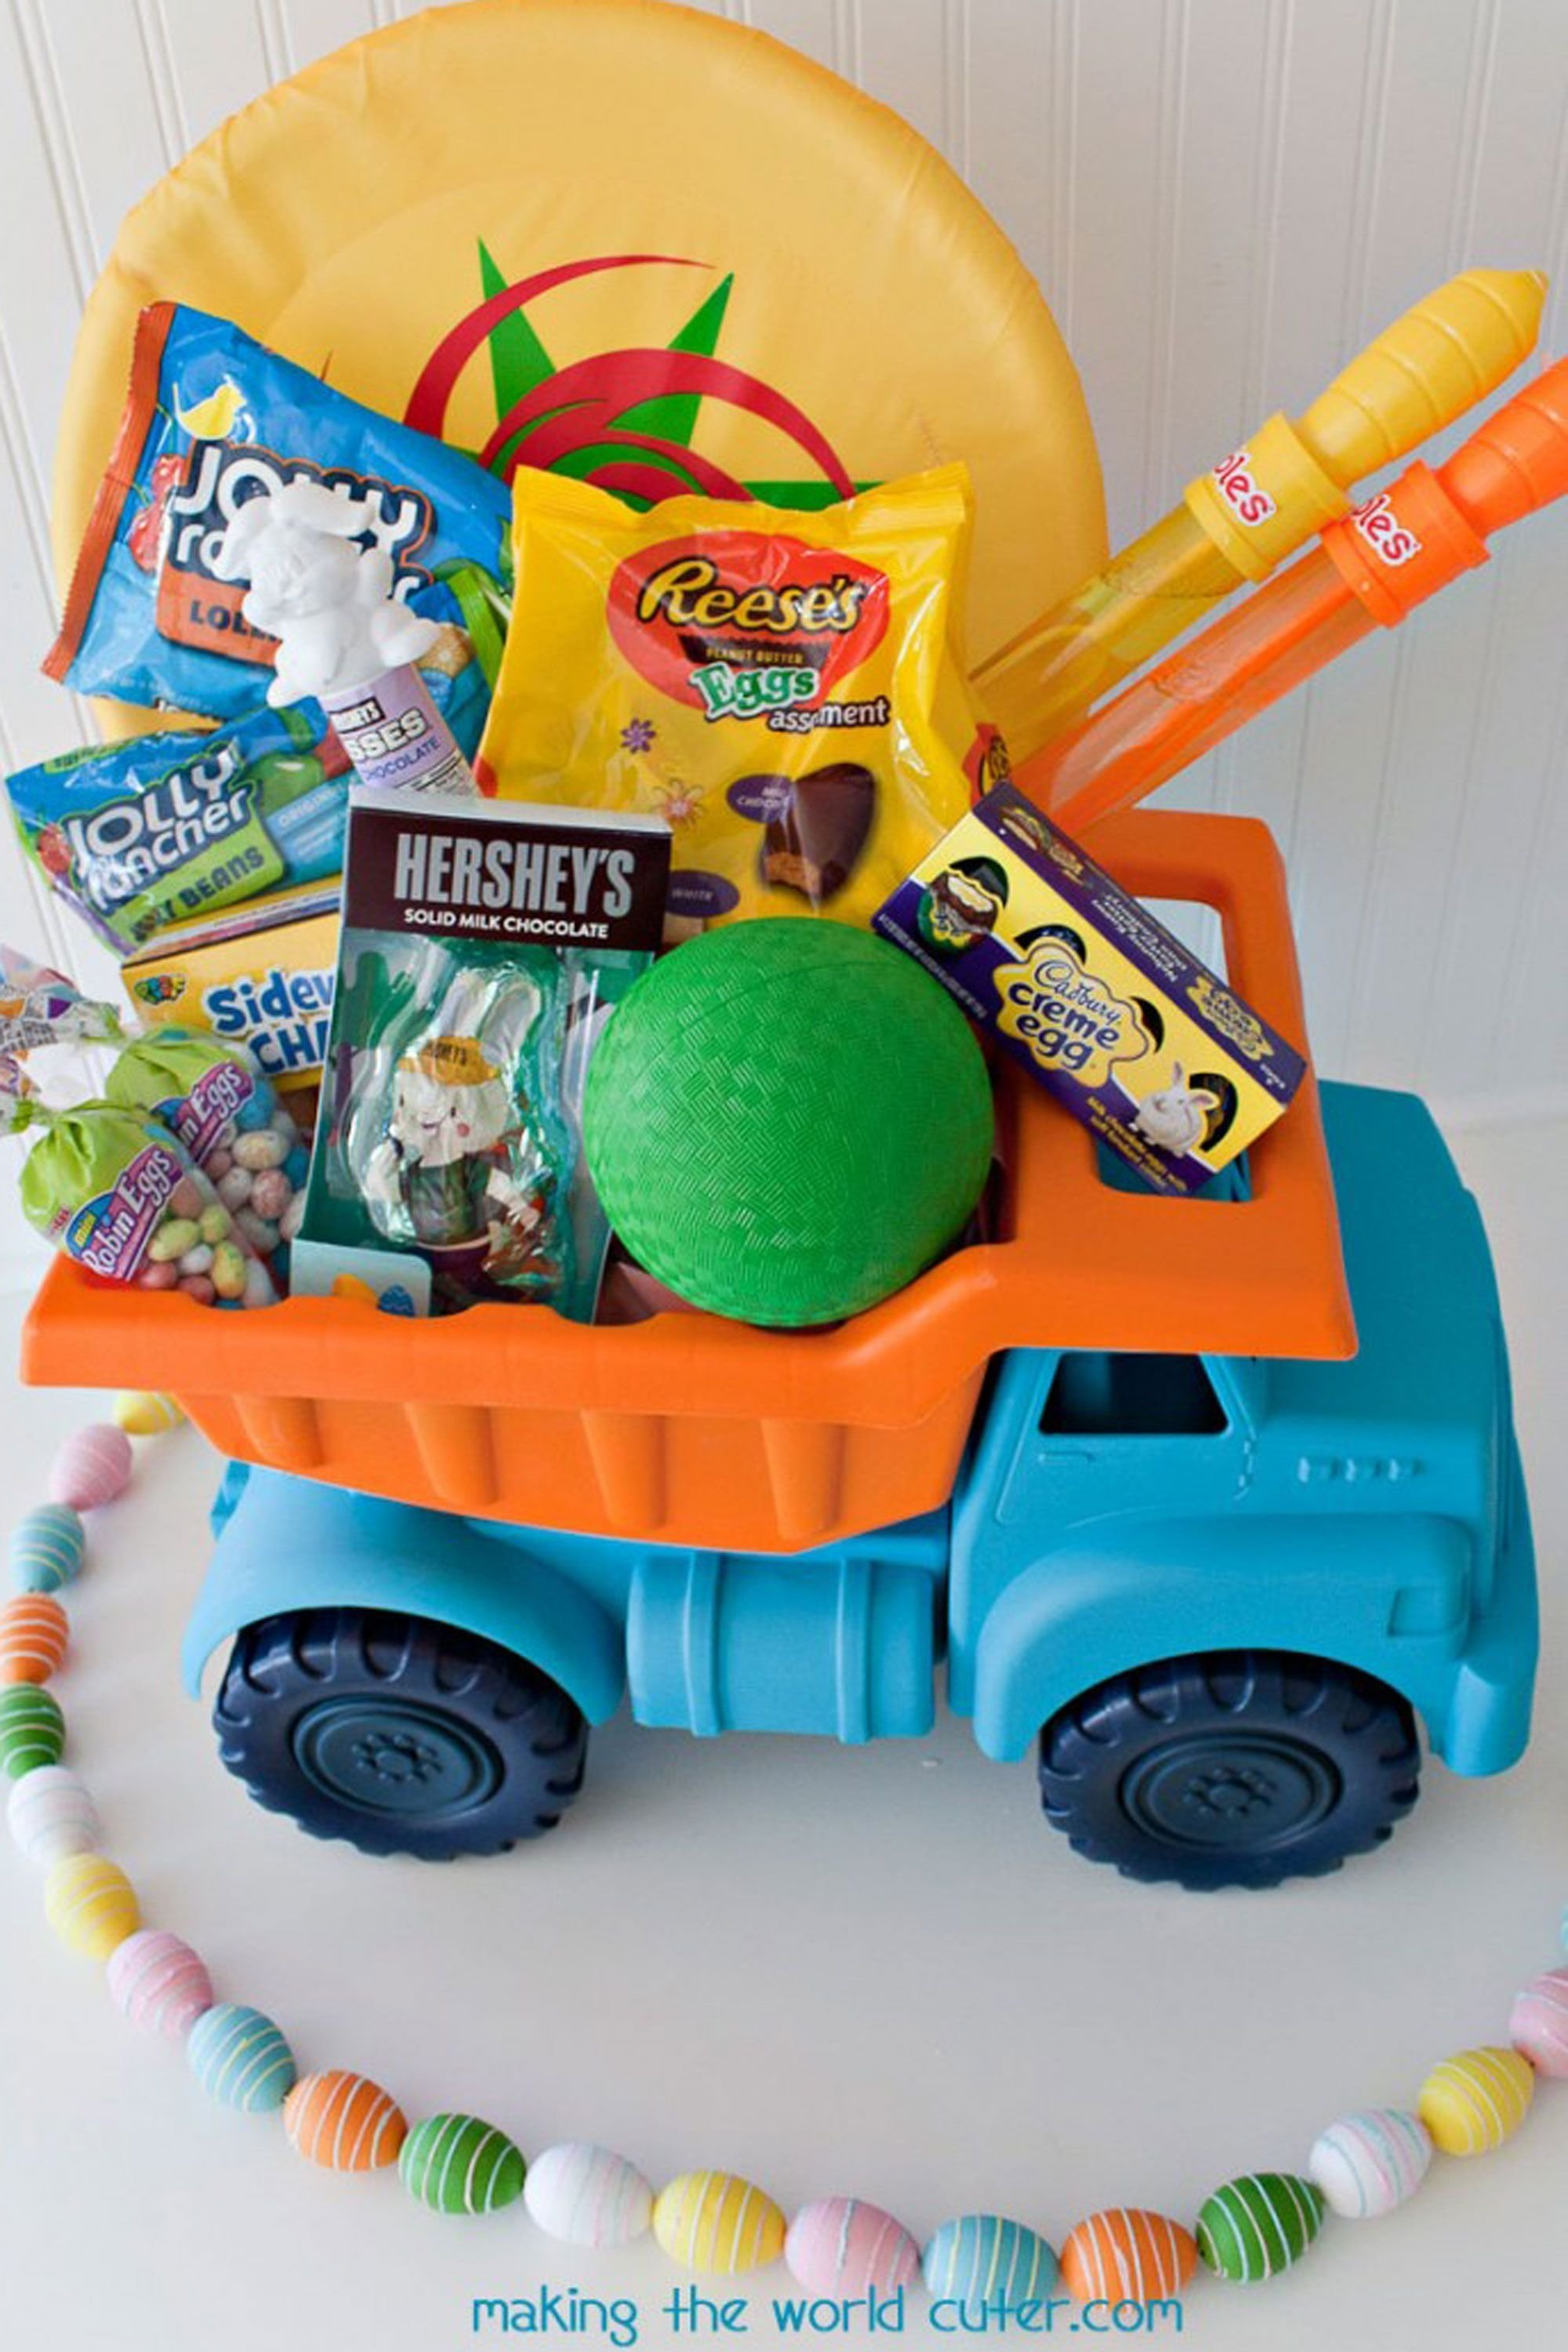 10 Spectacular Easter Basket Ideas For Boys 16 easter basket ideas for kids best easter gifts for babies 1 2020